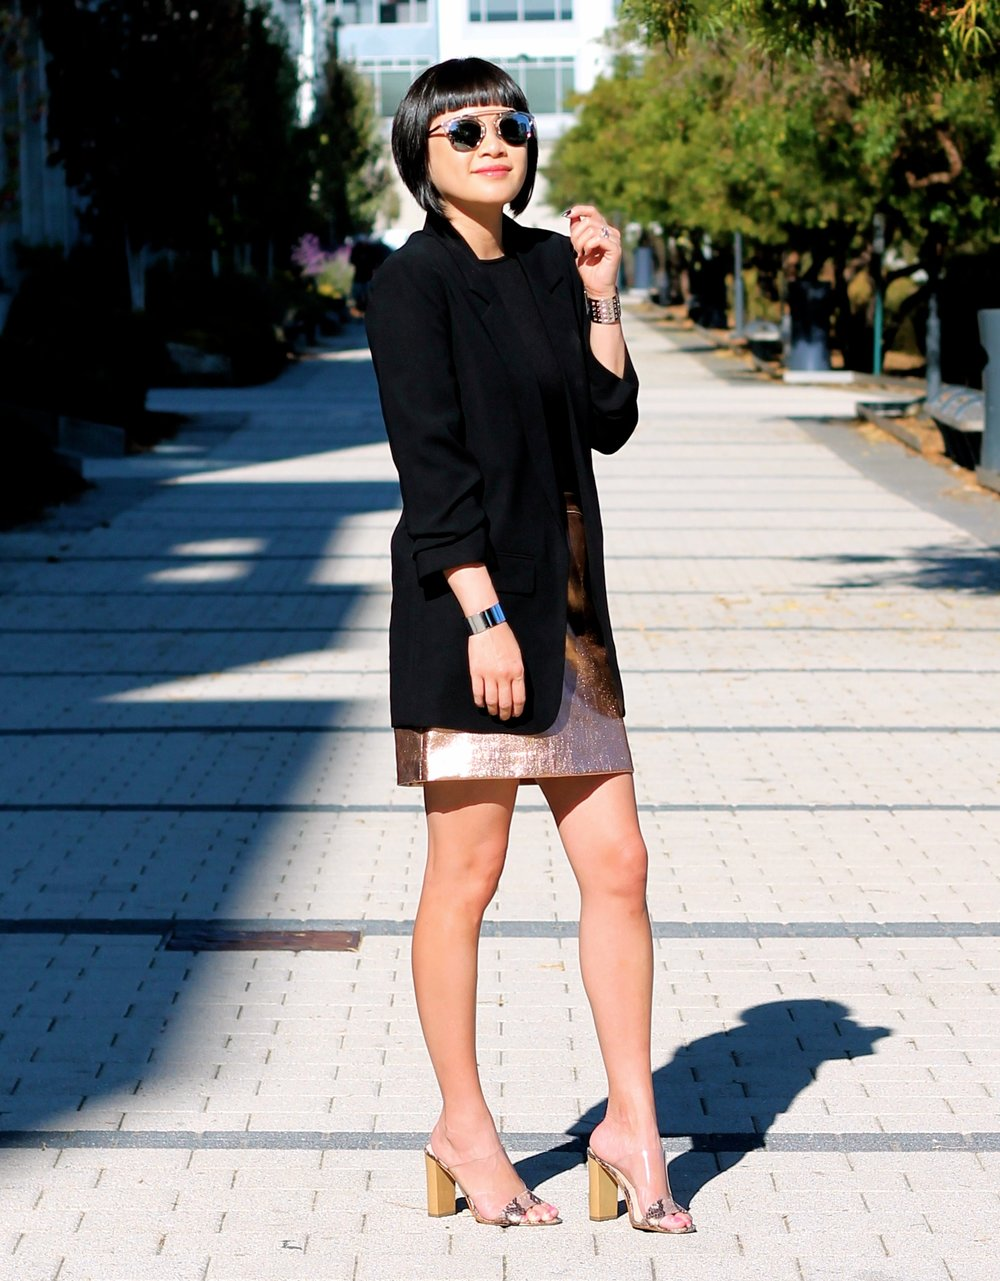 Asos blazer, Aritizia bodysuit, Club Monaco skirt, Guess shoes, Dior sunglasses, Svelte Metals cuffs